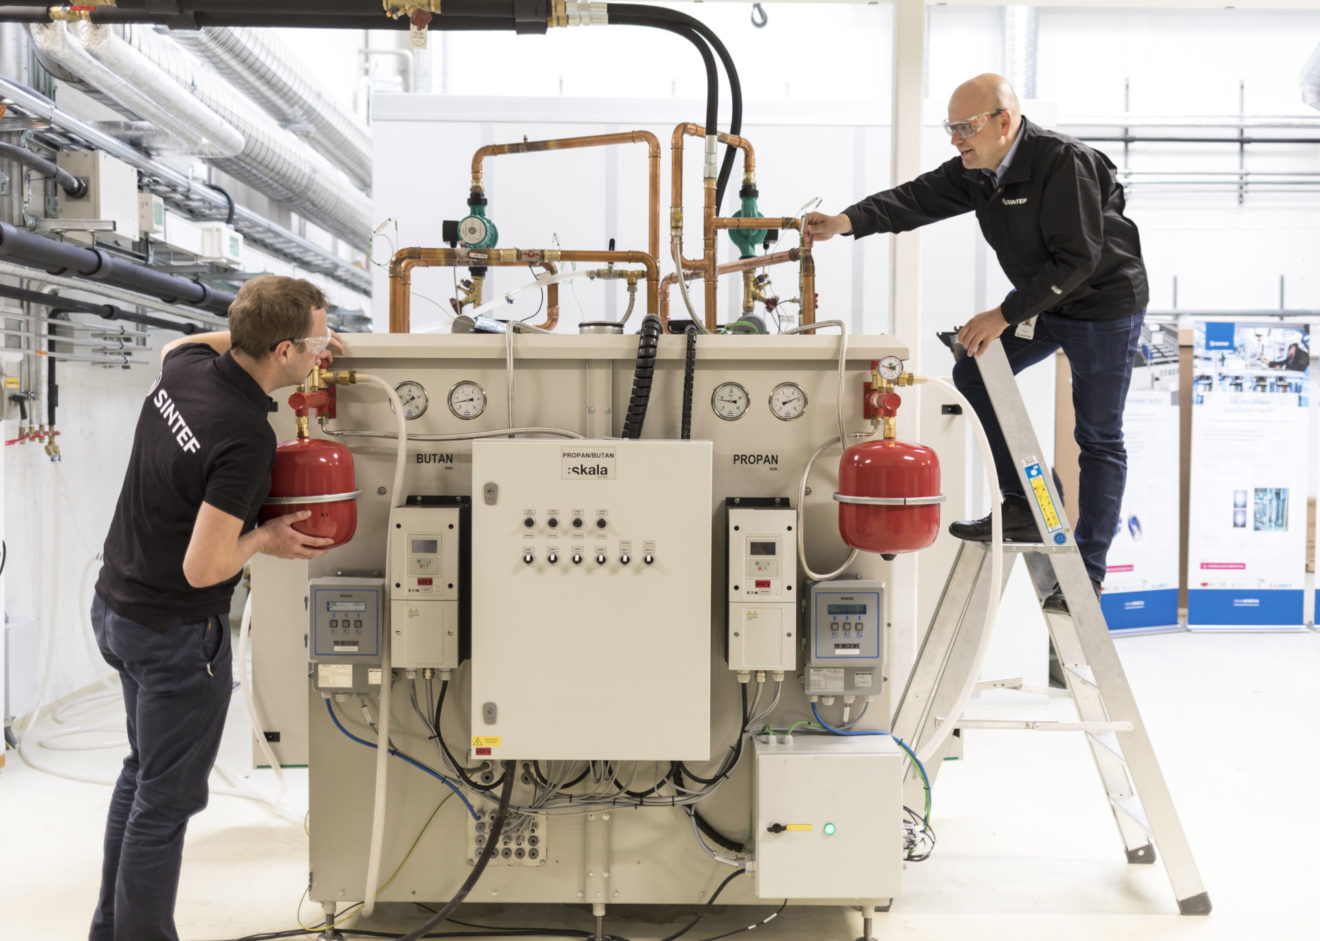 Phase-out of fossil fuels: SINTEF develops a novel high temperature heat pump